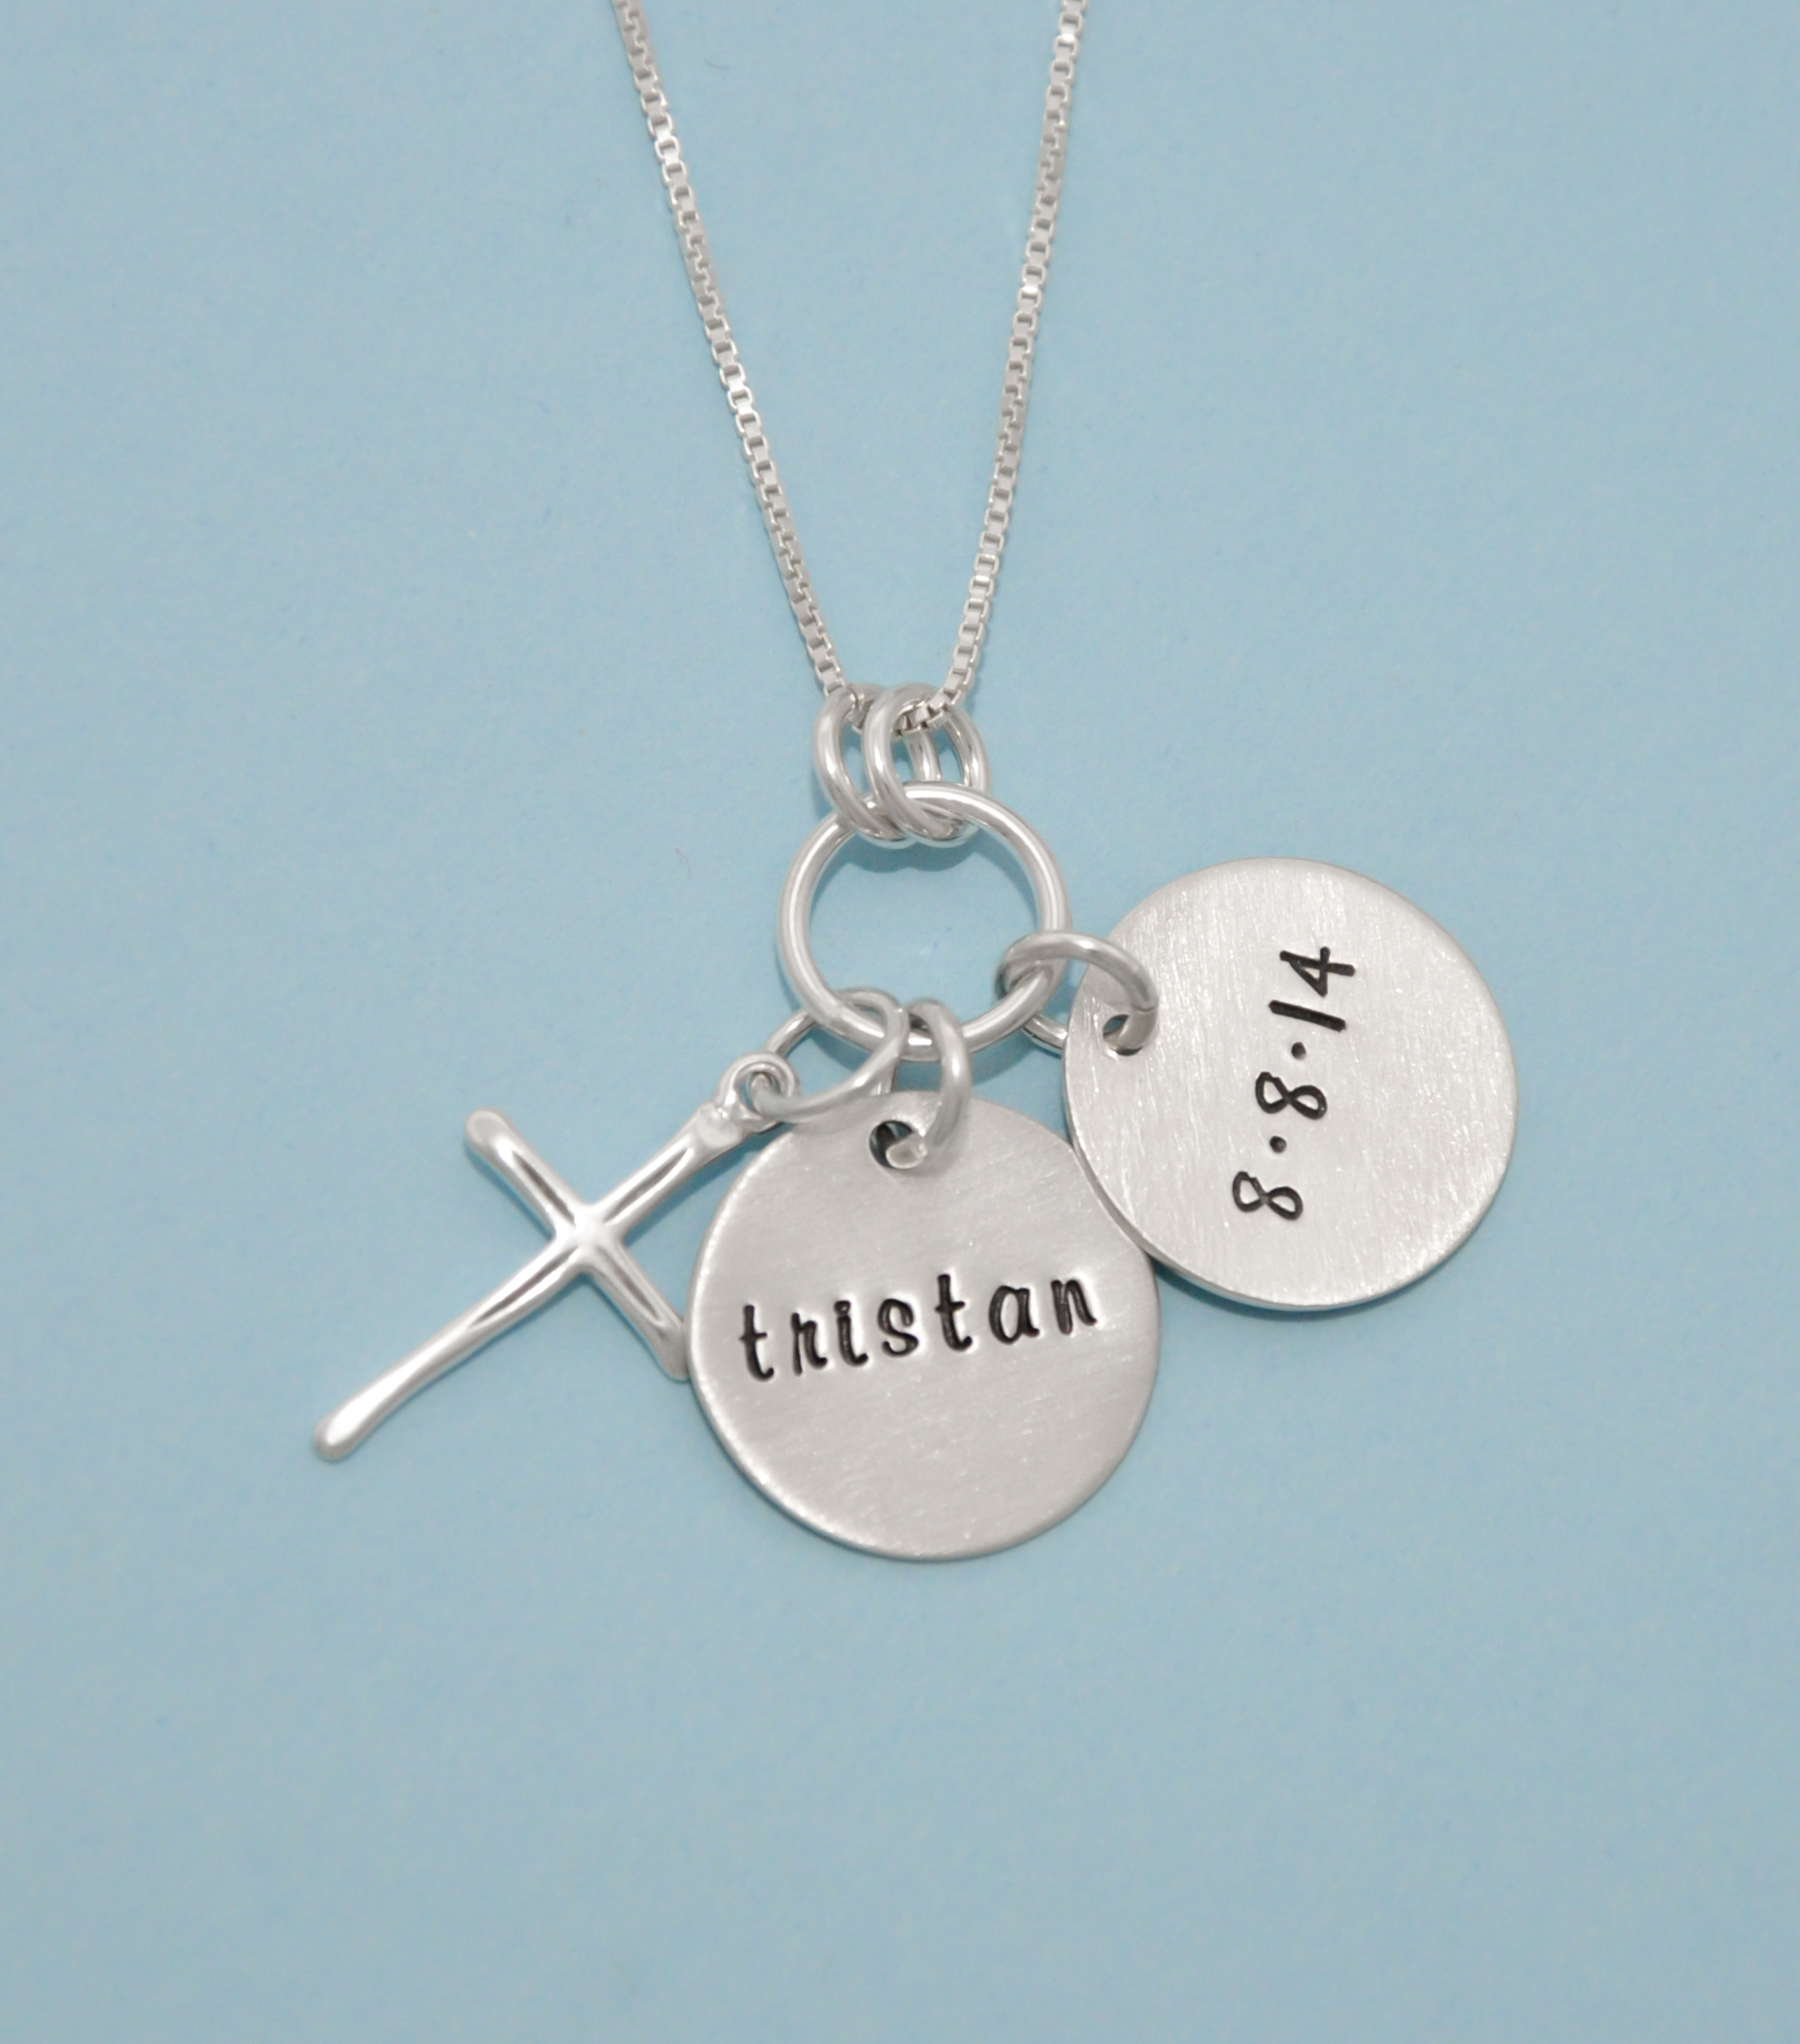 gift necklace christian jewelry christ confirmation in products bible baptized verse baptism